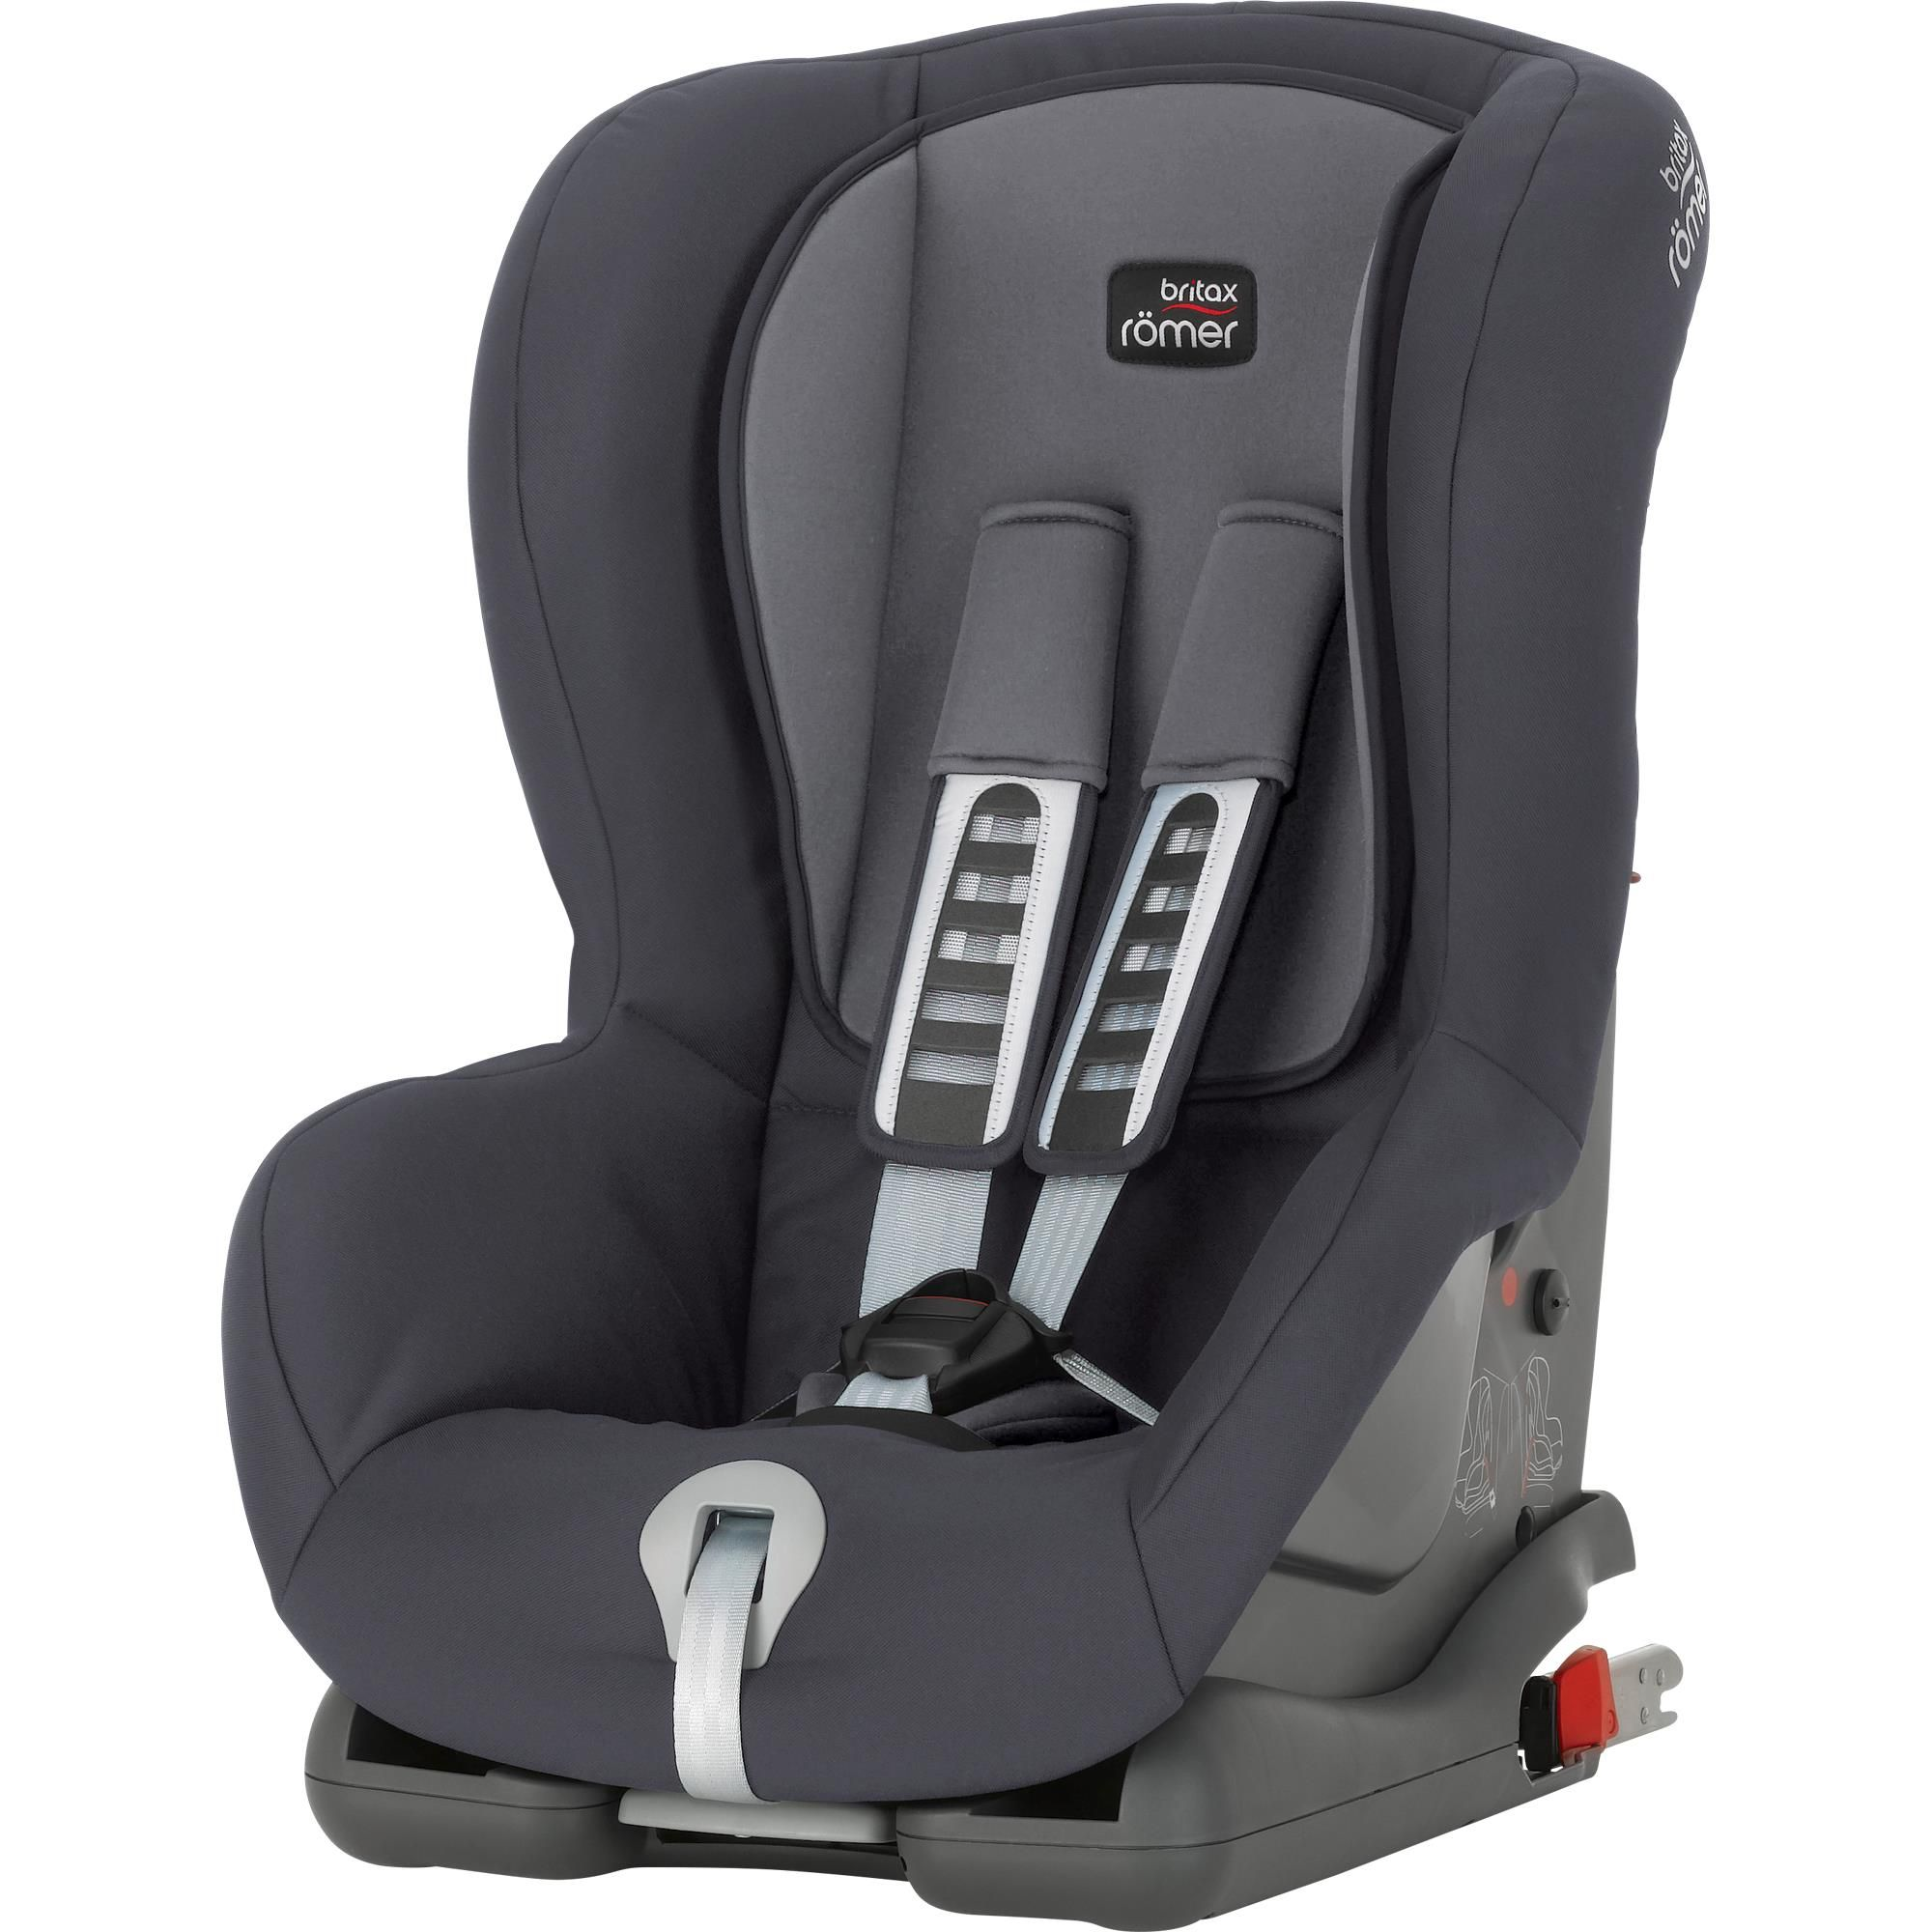 Britax Römer Duo Plus - Storm Grey